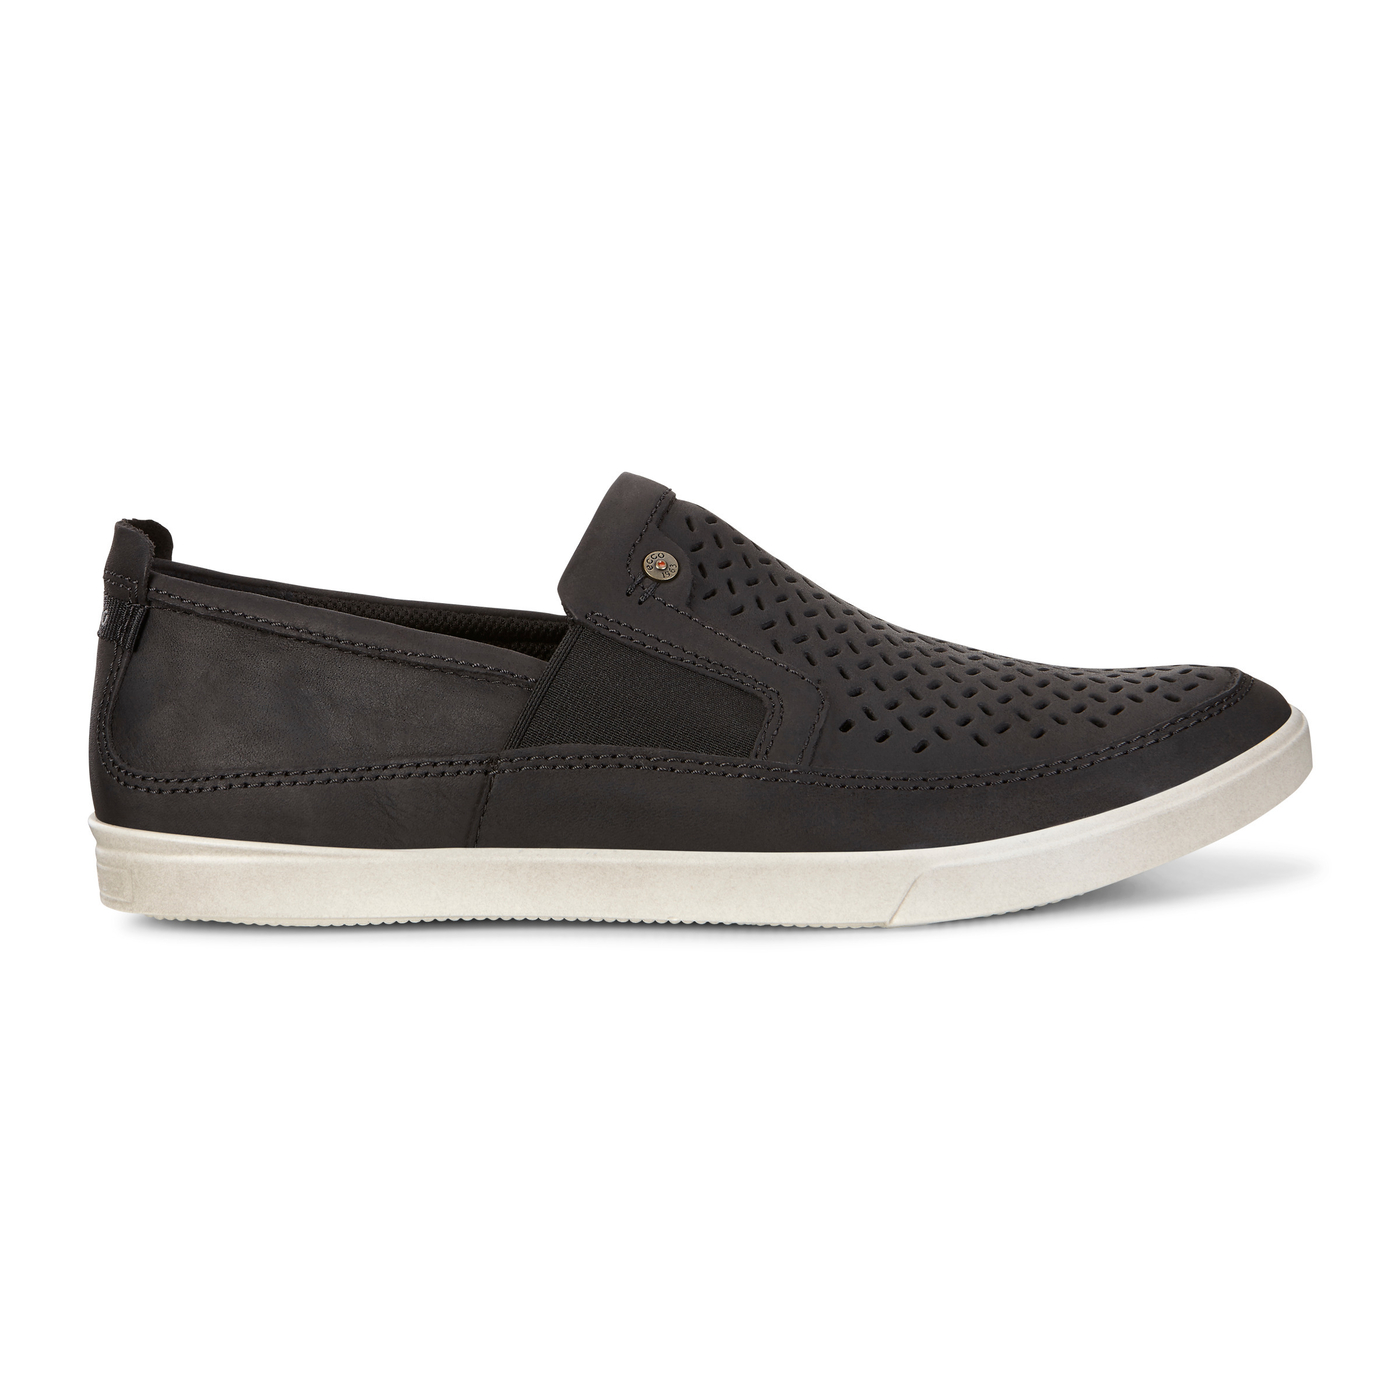 ECCO COLLIN Slip-on